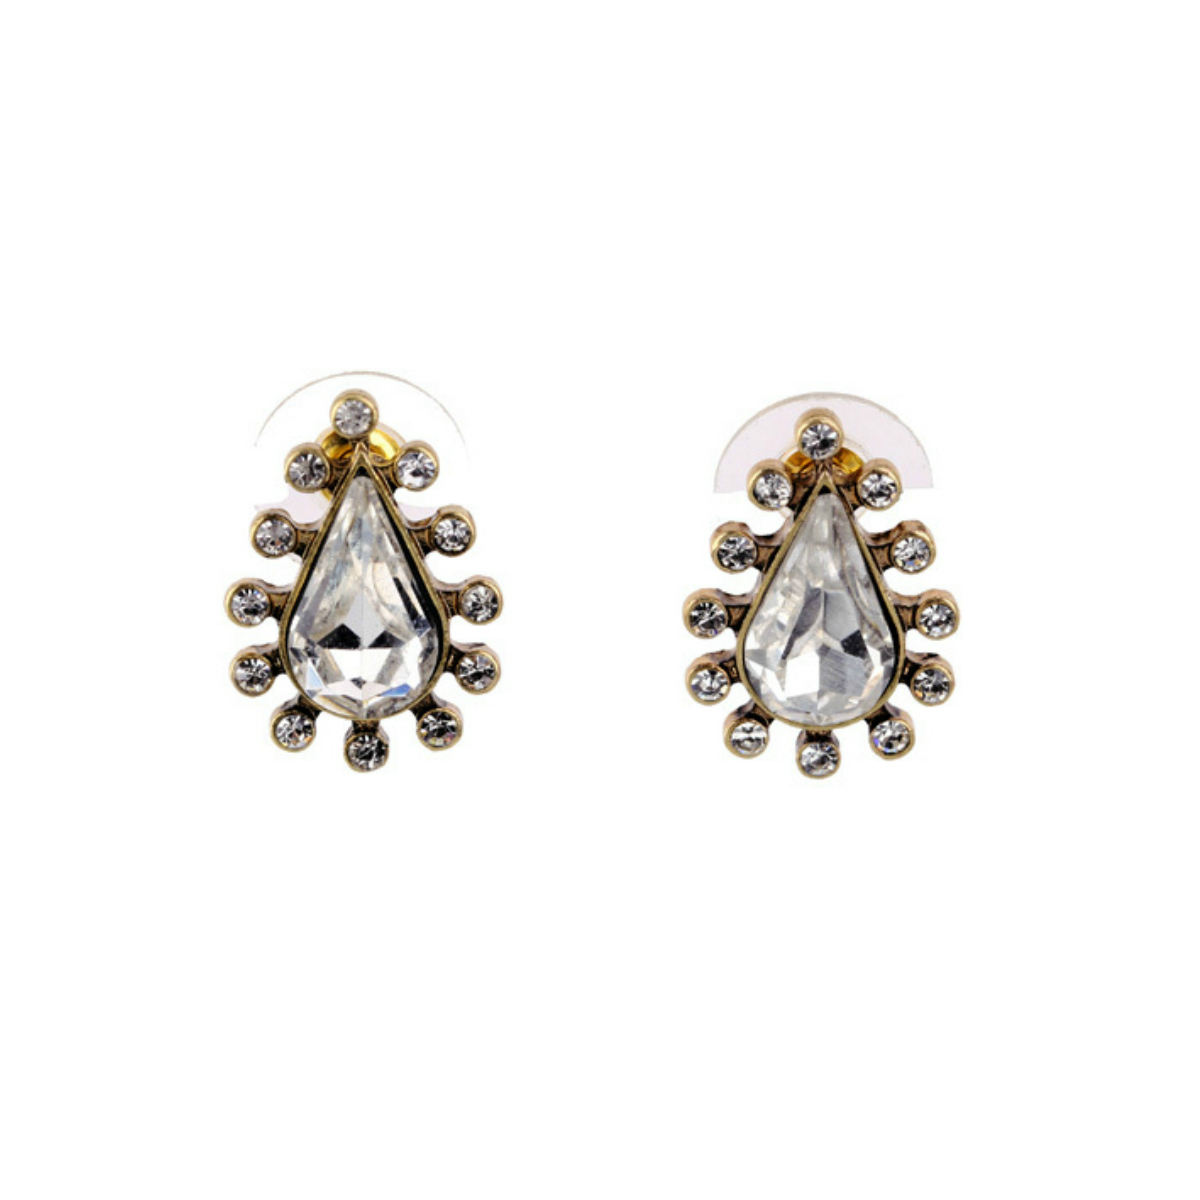 Rock & Rye Twila Stud Earrings